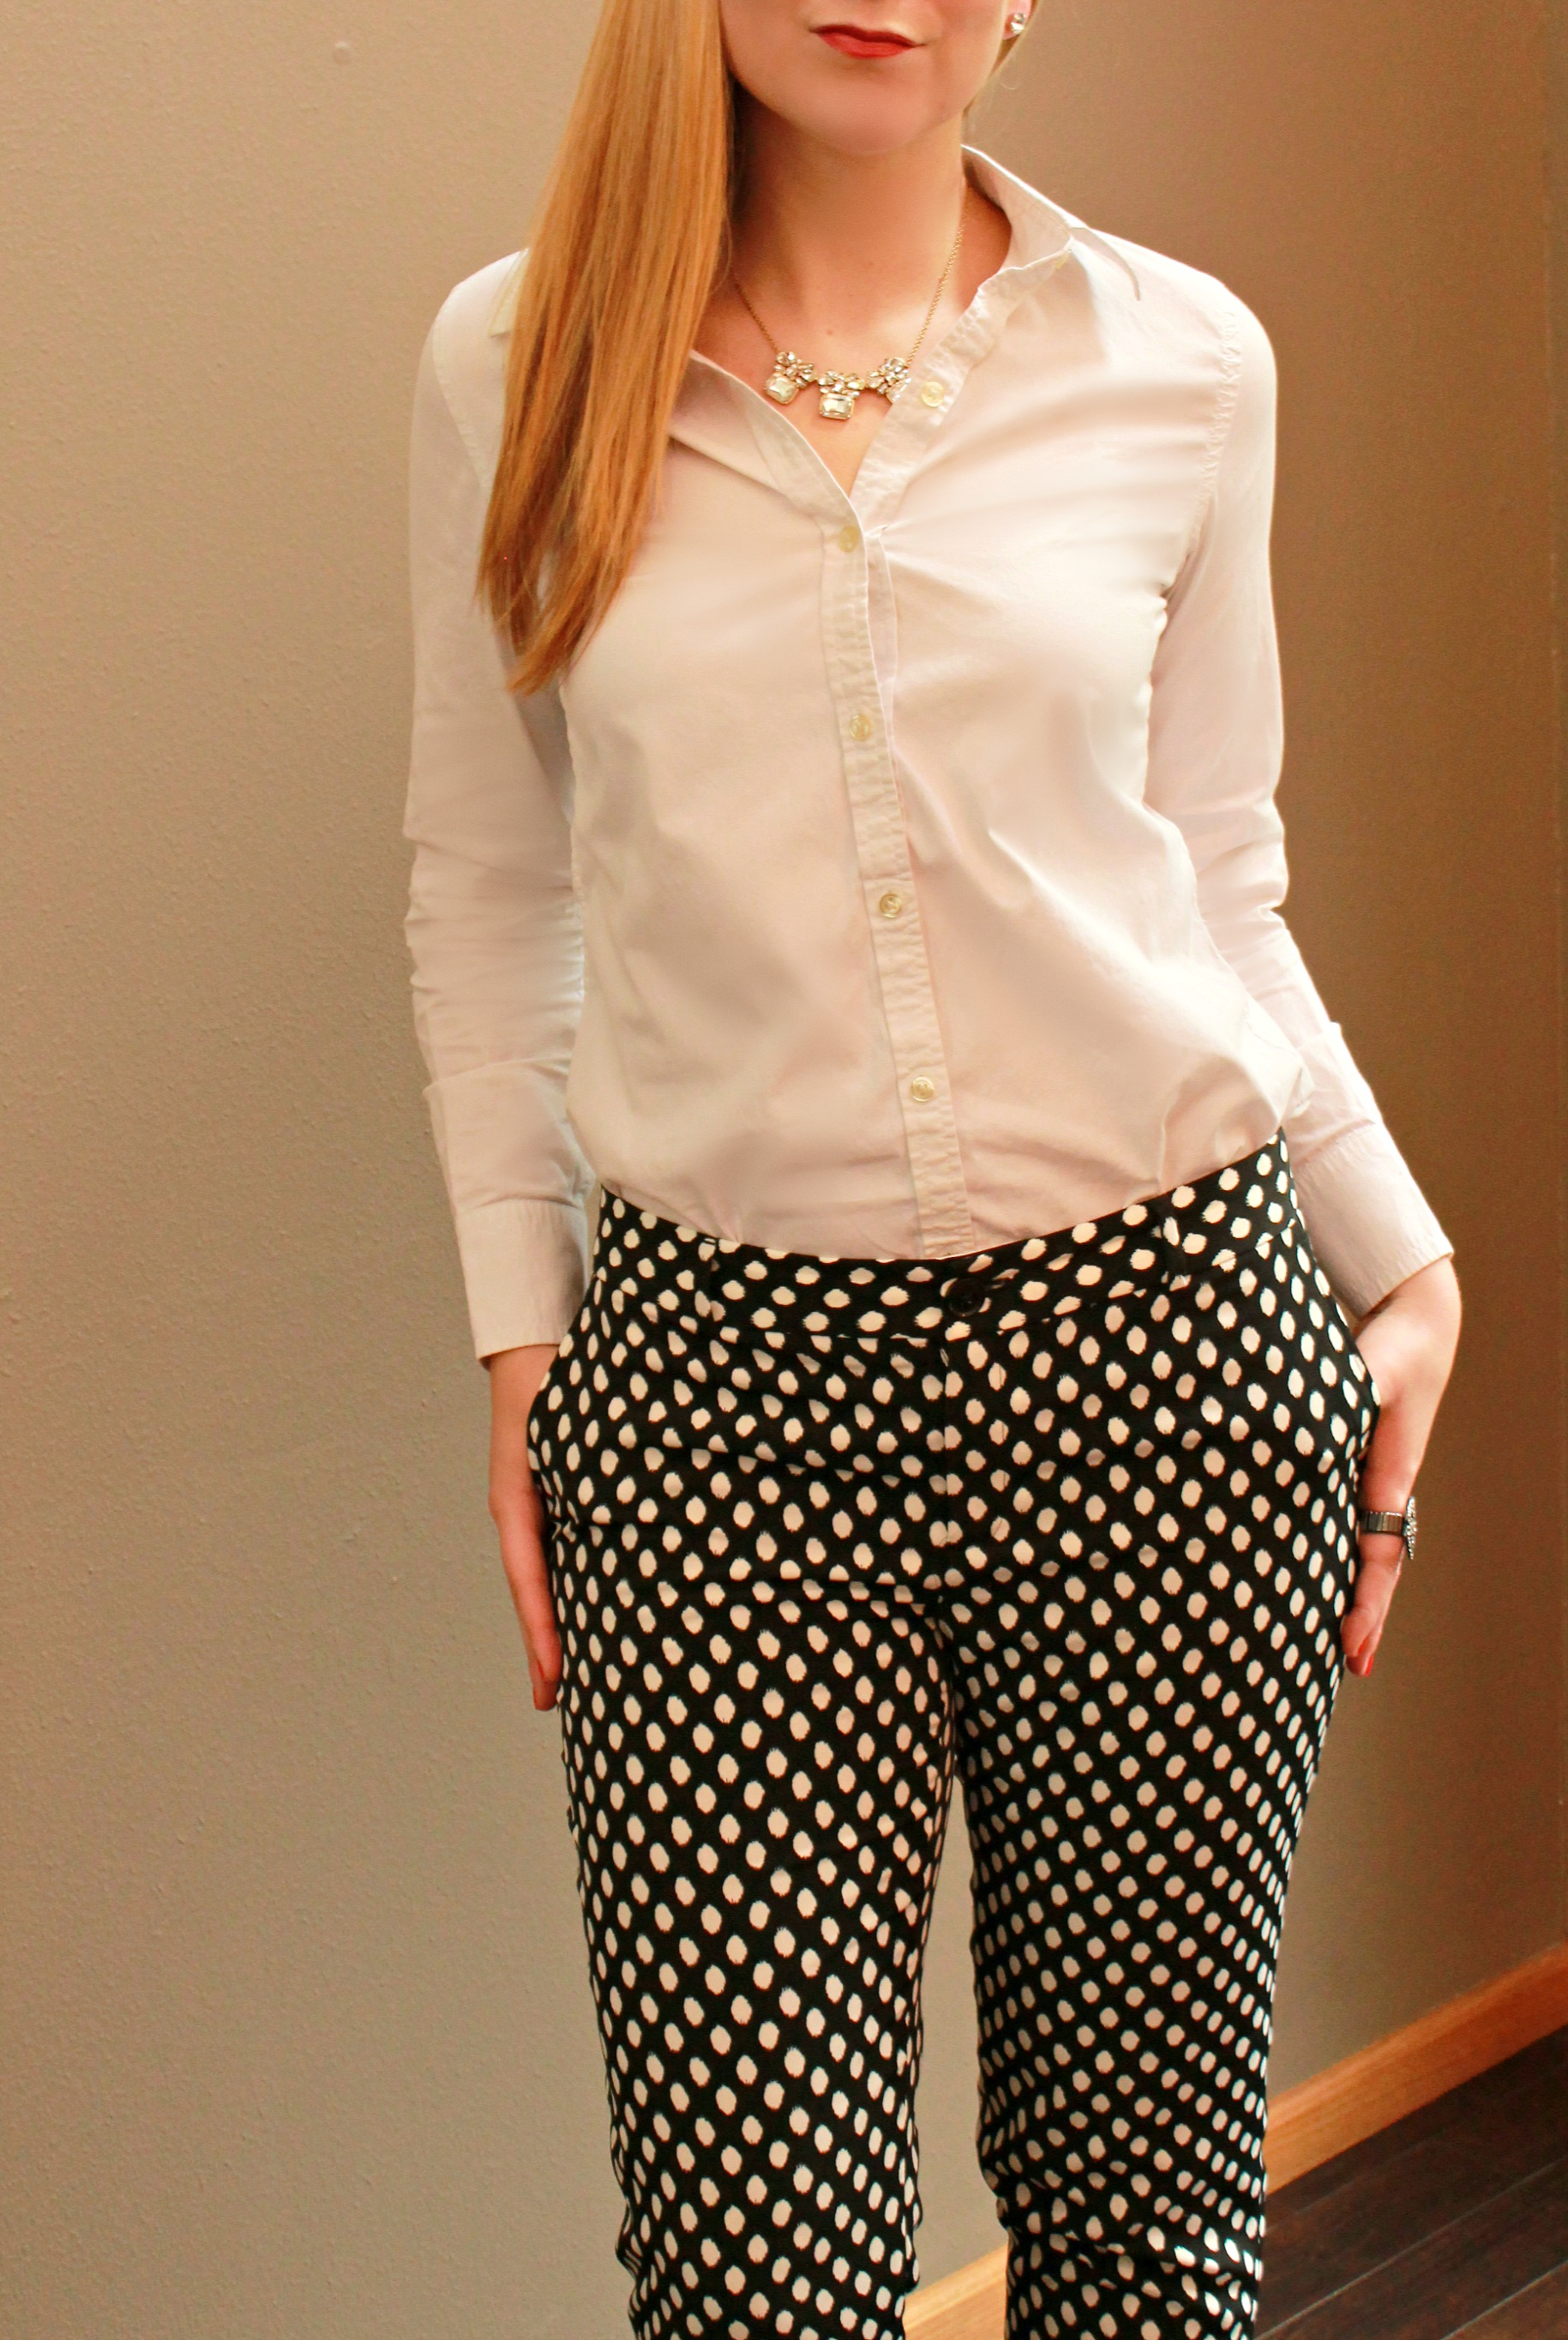 Printed pants + white button up